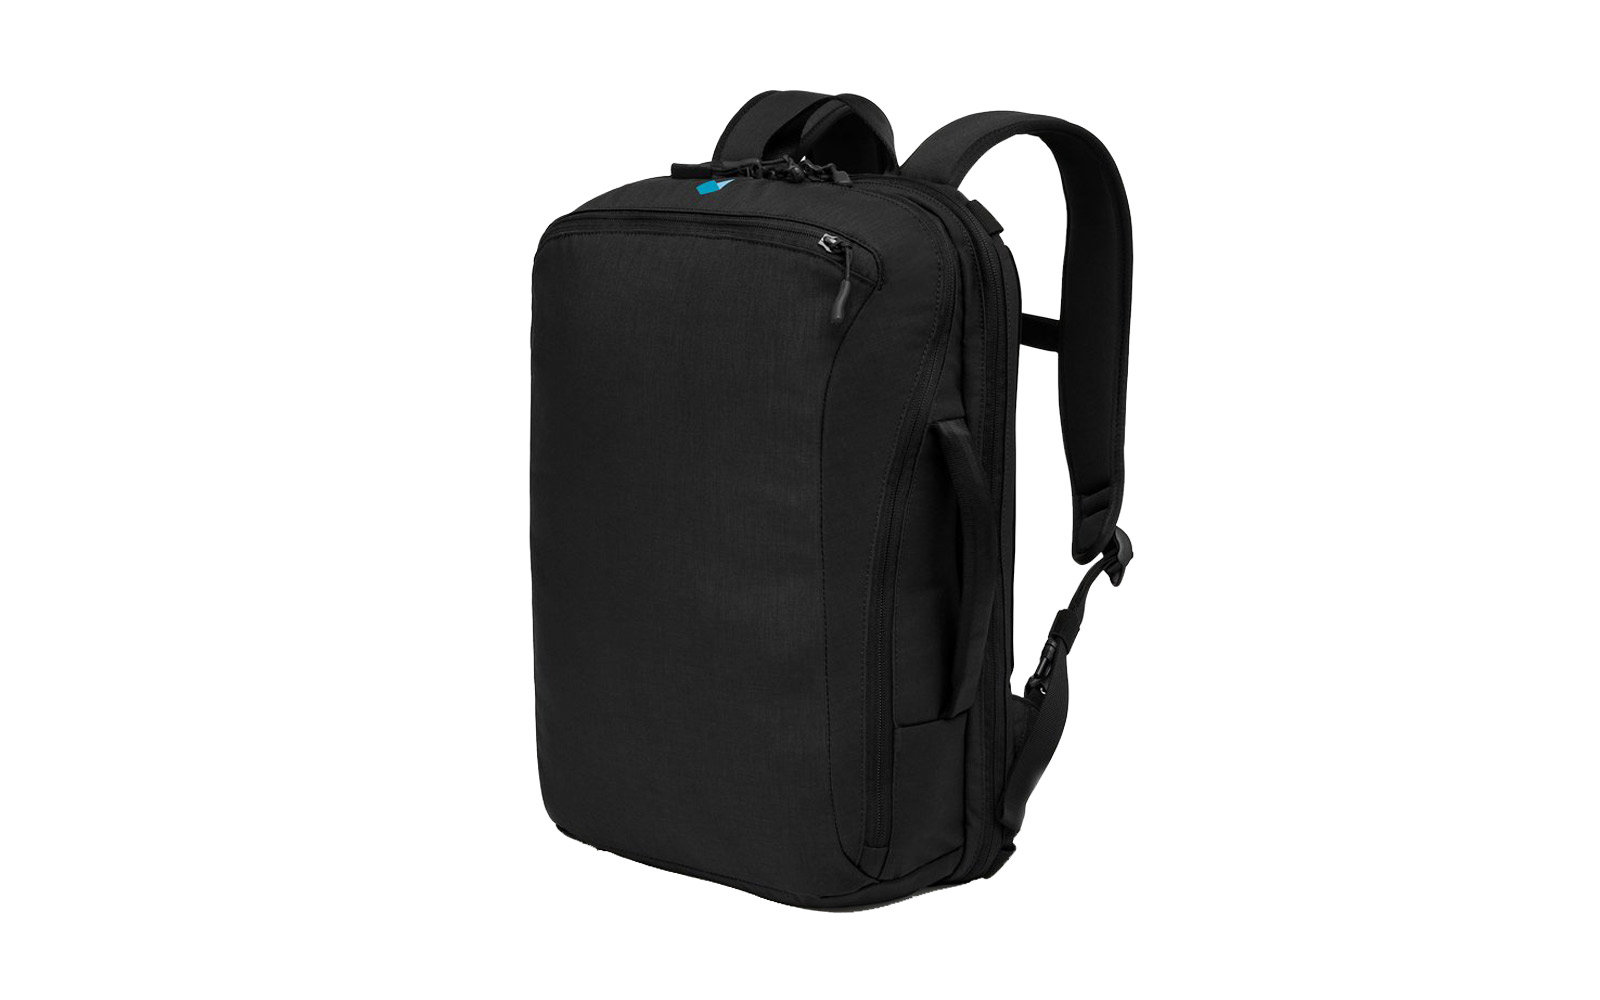 761330da9d44 Best Convertible Laptop Backpack  Minaal Daily Bag